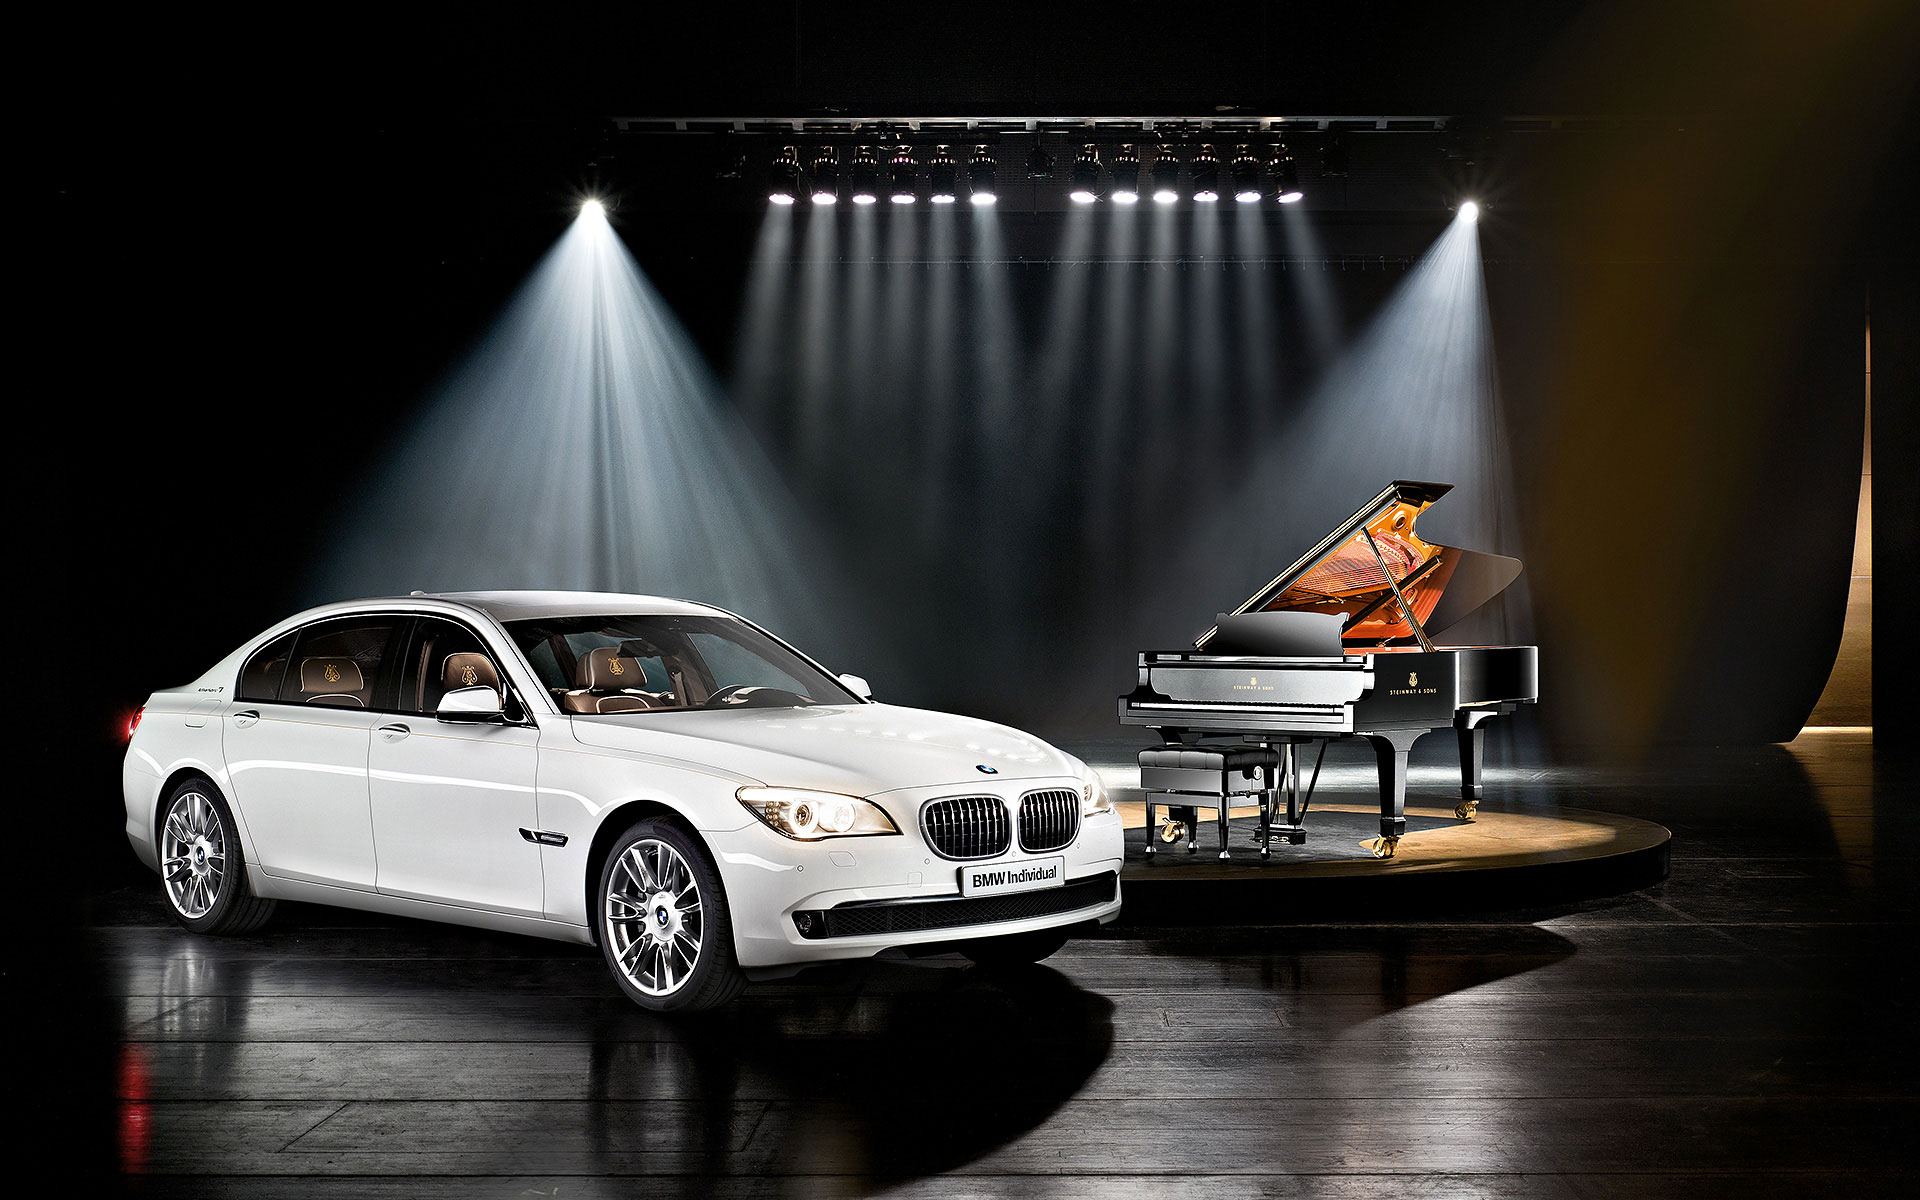 BMW 7er inspired by Steinway & Sons